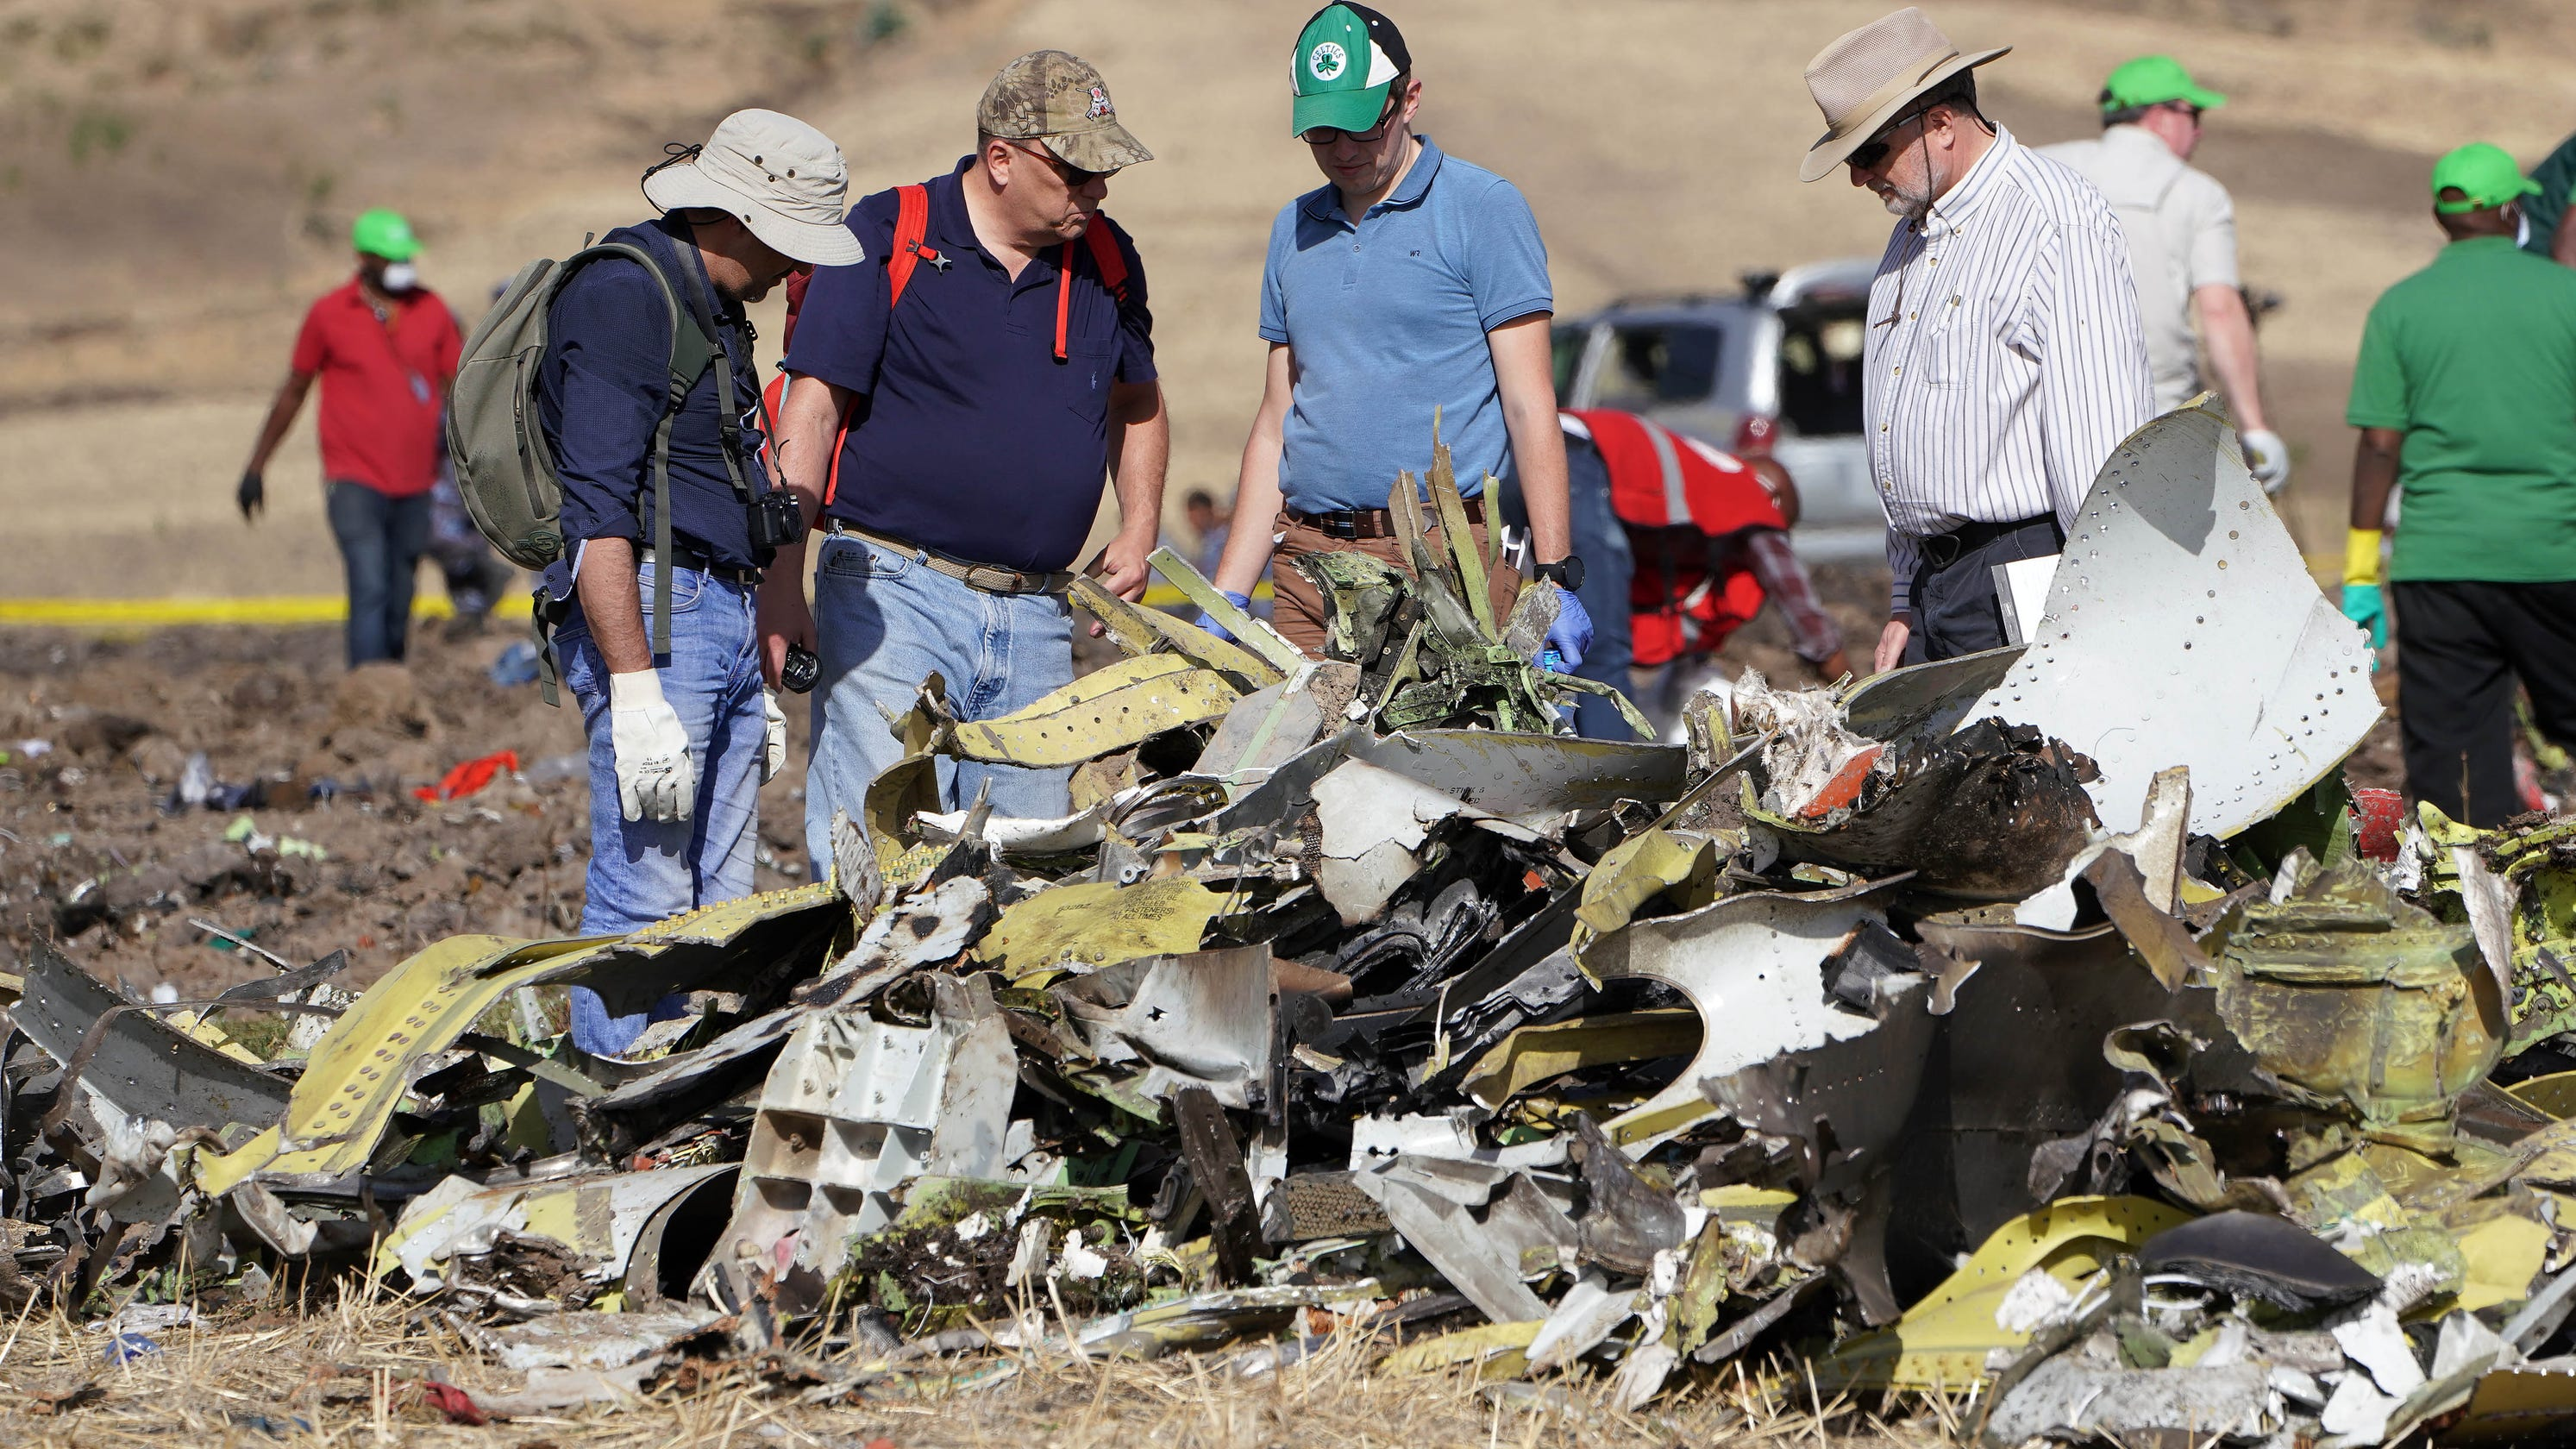 5acf1f883eed Investigators believe Boeing anti-stall system was activated in Ethiopian  crash  Report